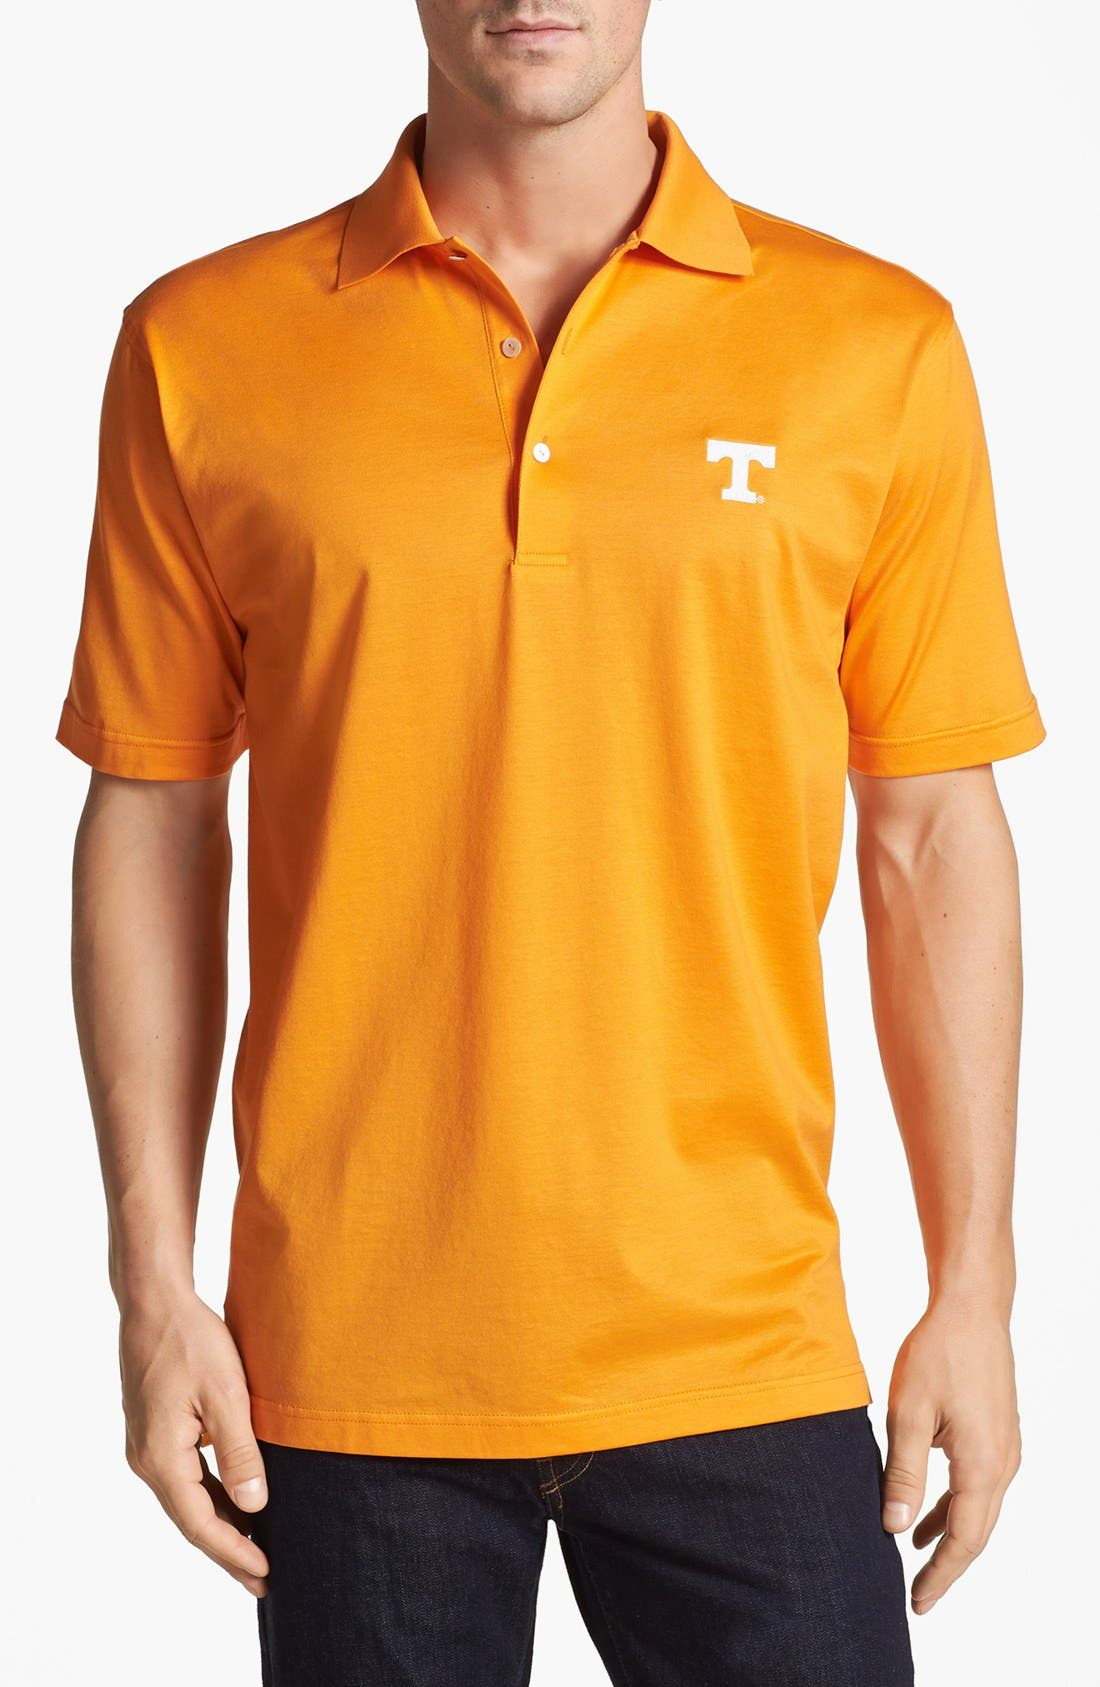 Main Image - Peter Millar 'University of Tennessee' Classic Polo